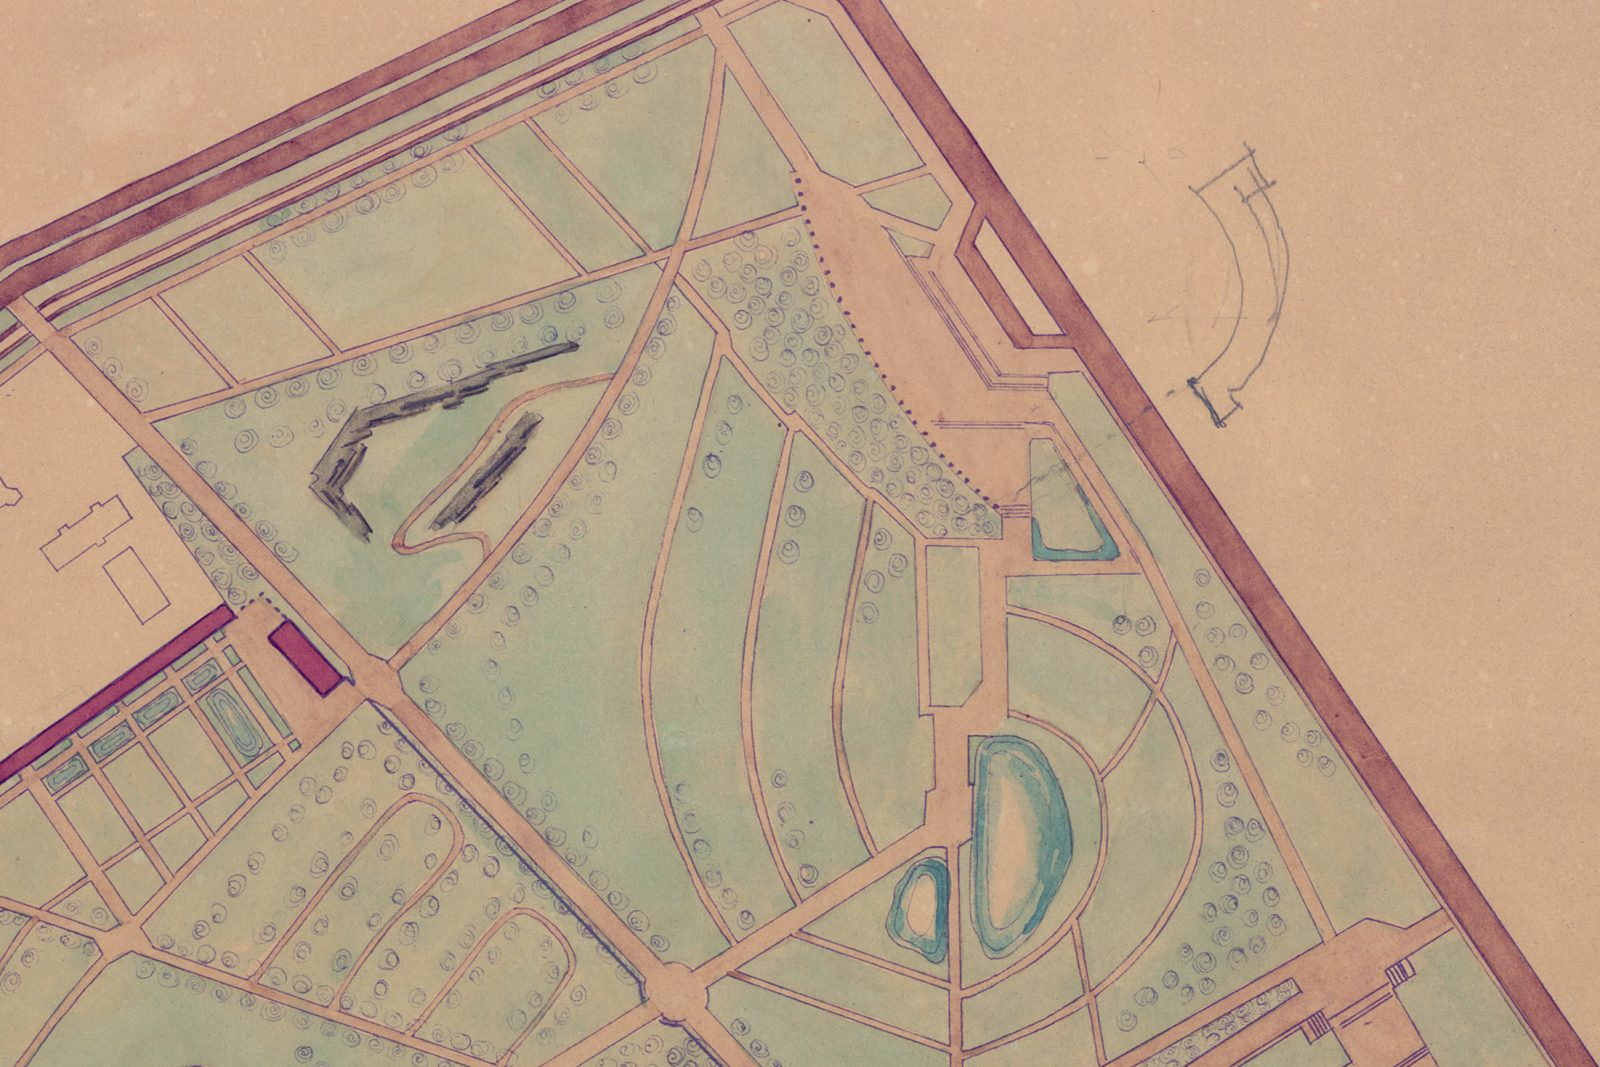 Draft design for the zoo and Praga Embankment design by Alina Scholtz/Warsaw University Library Studio, 1950, ozalid, watercolour. National Institute of Architecture and Urban Planing